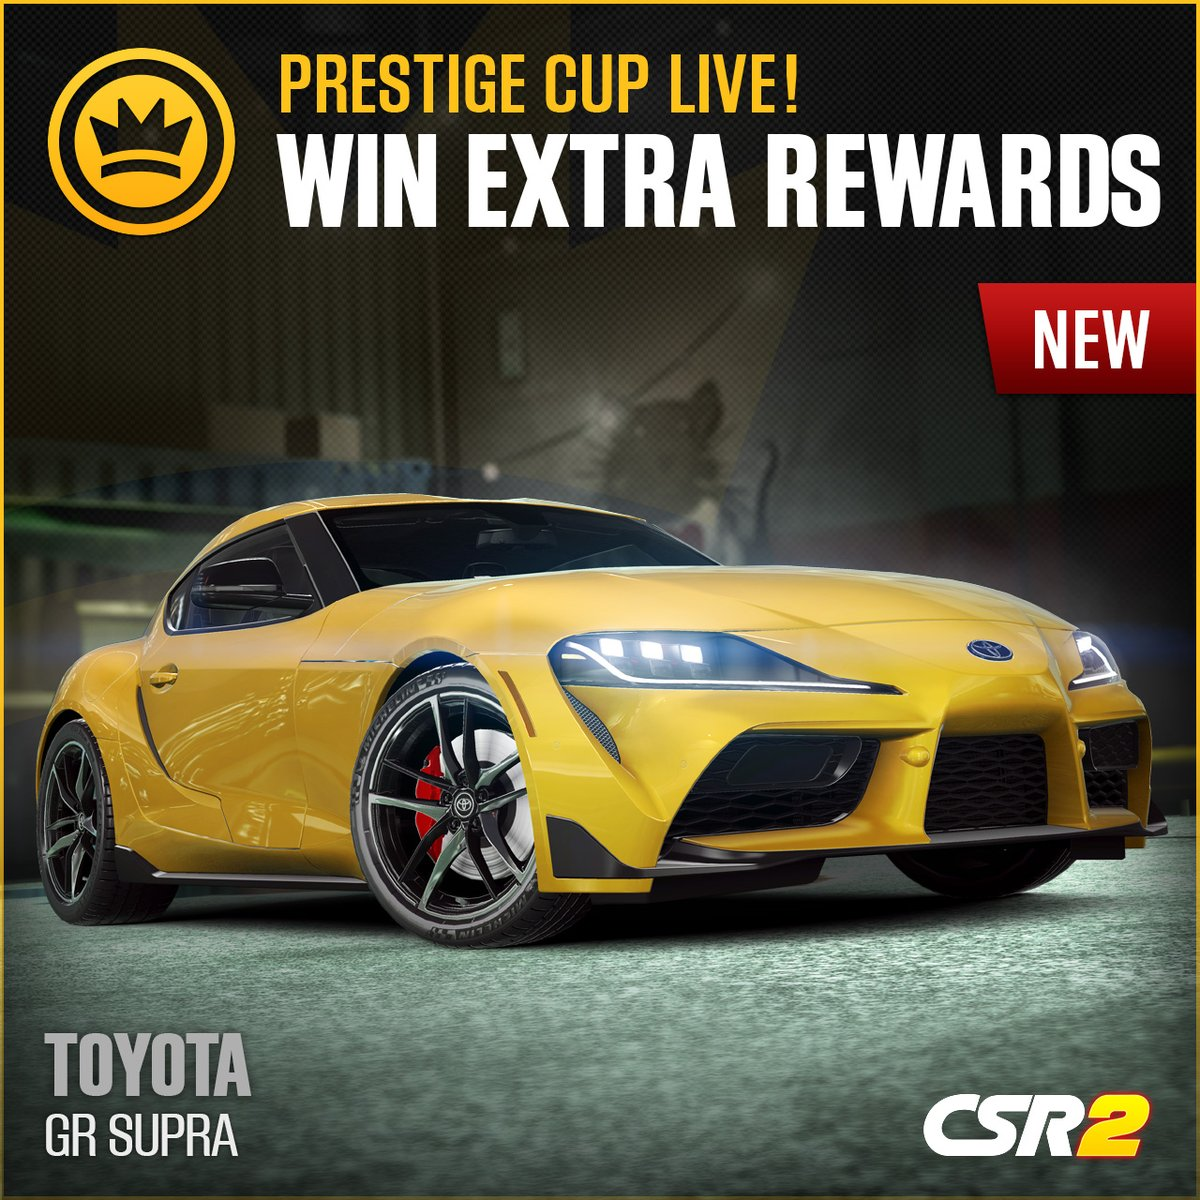 The Prestige Cup is now live featuring the all-new Toyota GR Supra! #CSR2 #Toyota #Supra pic.twitter.com/bgq0BXRZn4